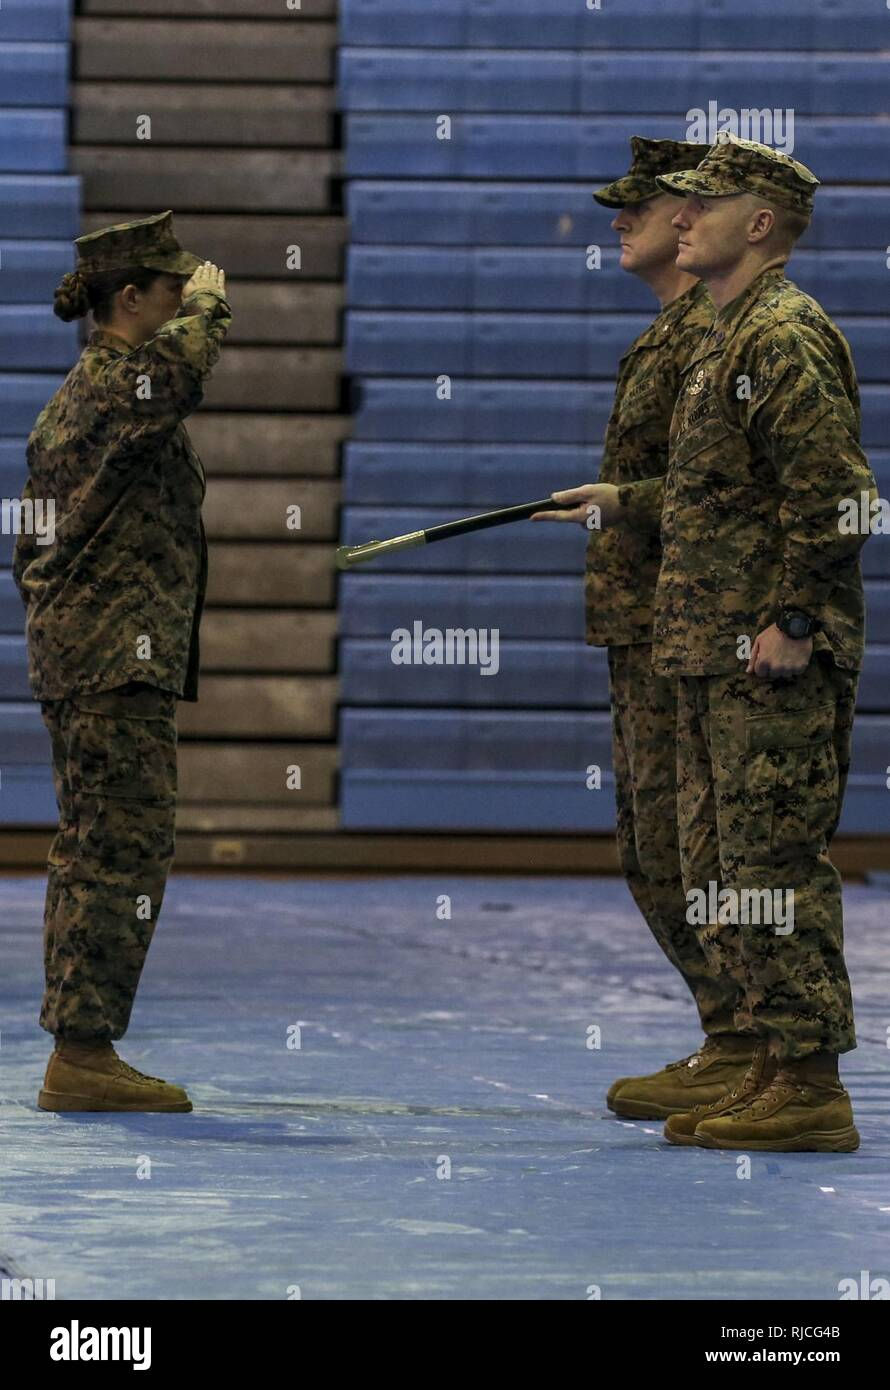 U.S. Marine Corps Sgt. Maj. Christina A. Grantham, on coming sergeant major for Marine Air Support Squadron 2 (MASS-2), Marine Air Control Group 18, 1st Marine Aircraft Wing, salutes Lt. Col. Daniel M. Murphy, commanding officer, MASS-2, during a Relief and Appointment ceremony on Marine Corps Air-Station Futenma, Okinawa, Japan, Jan. 11, 2018. Grantham relieved Sgt. Maj. Joshua J. Smith as the sergeant major for MASS-2. - Stock Image